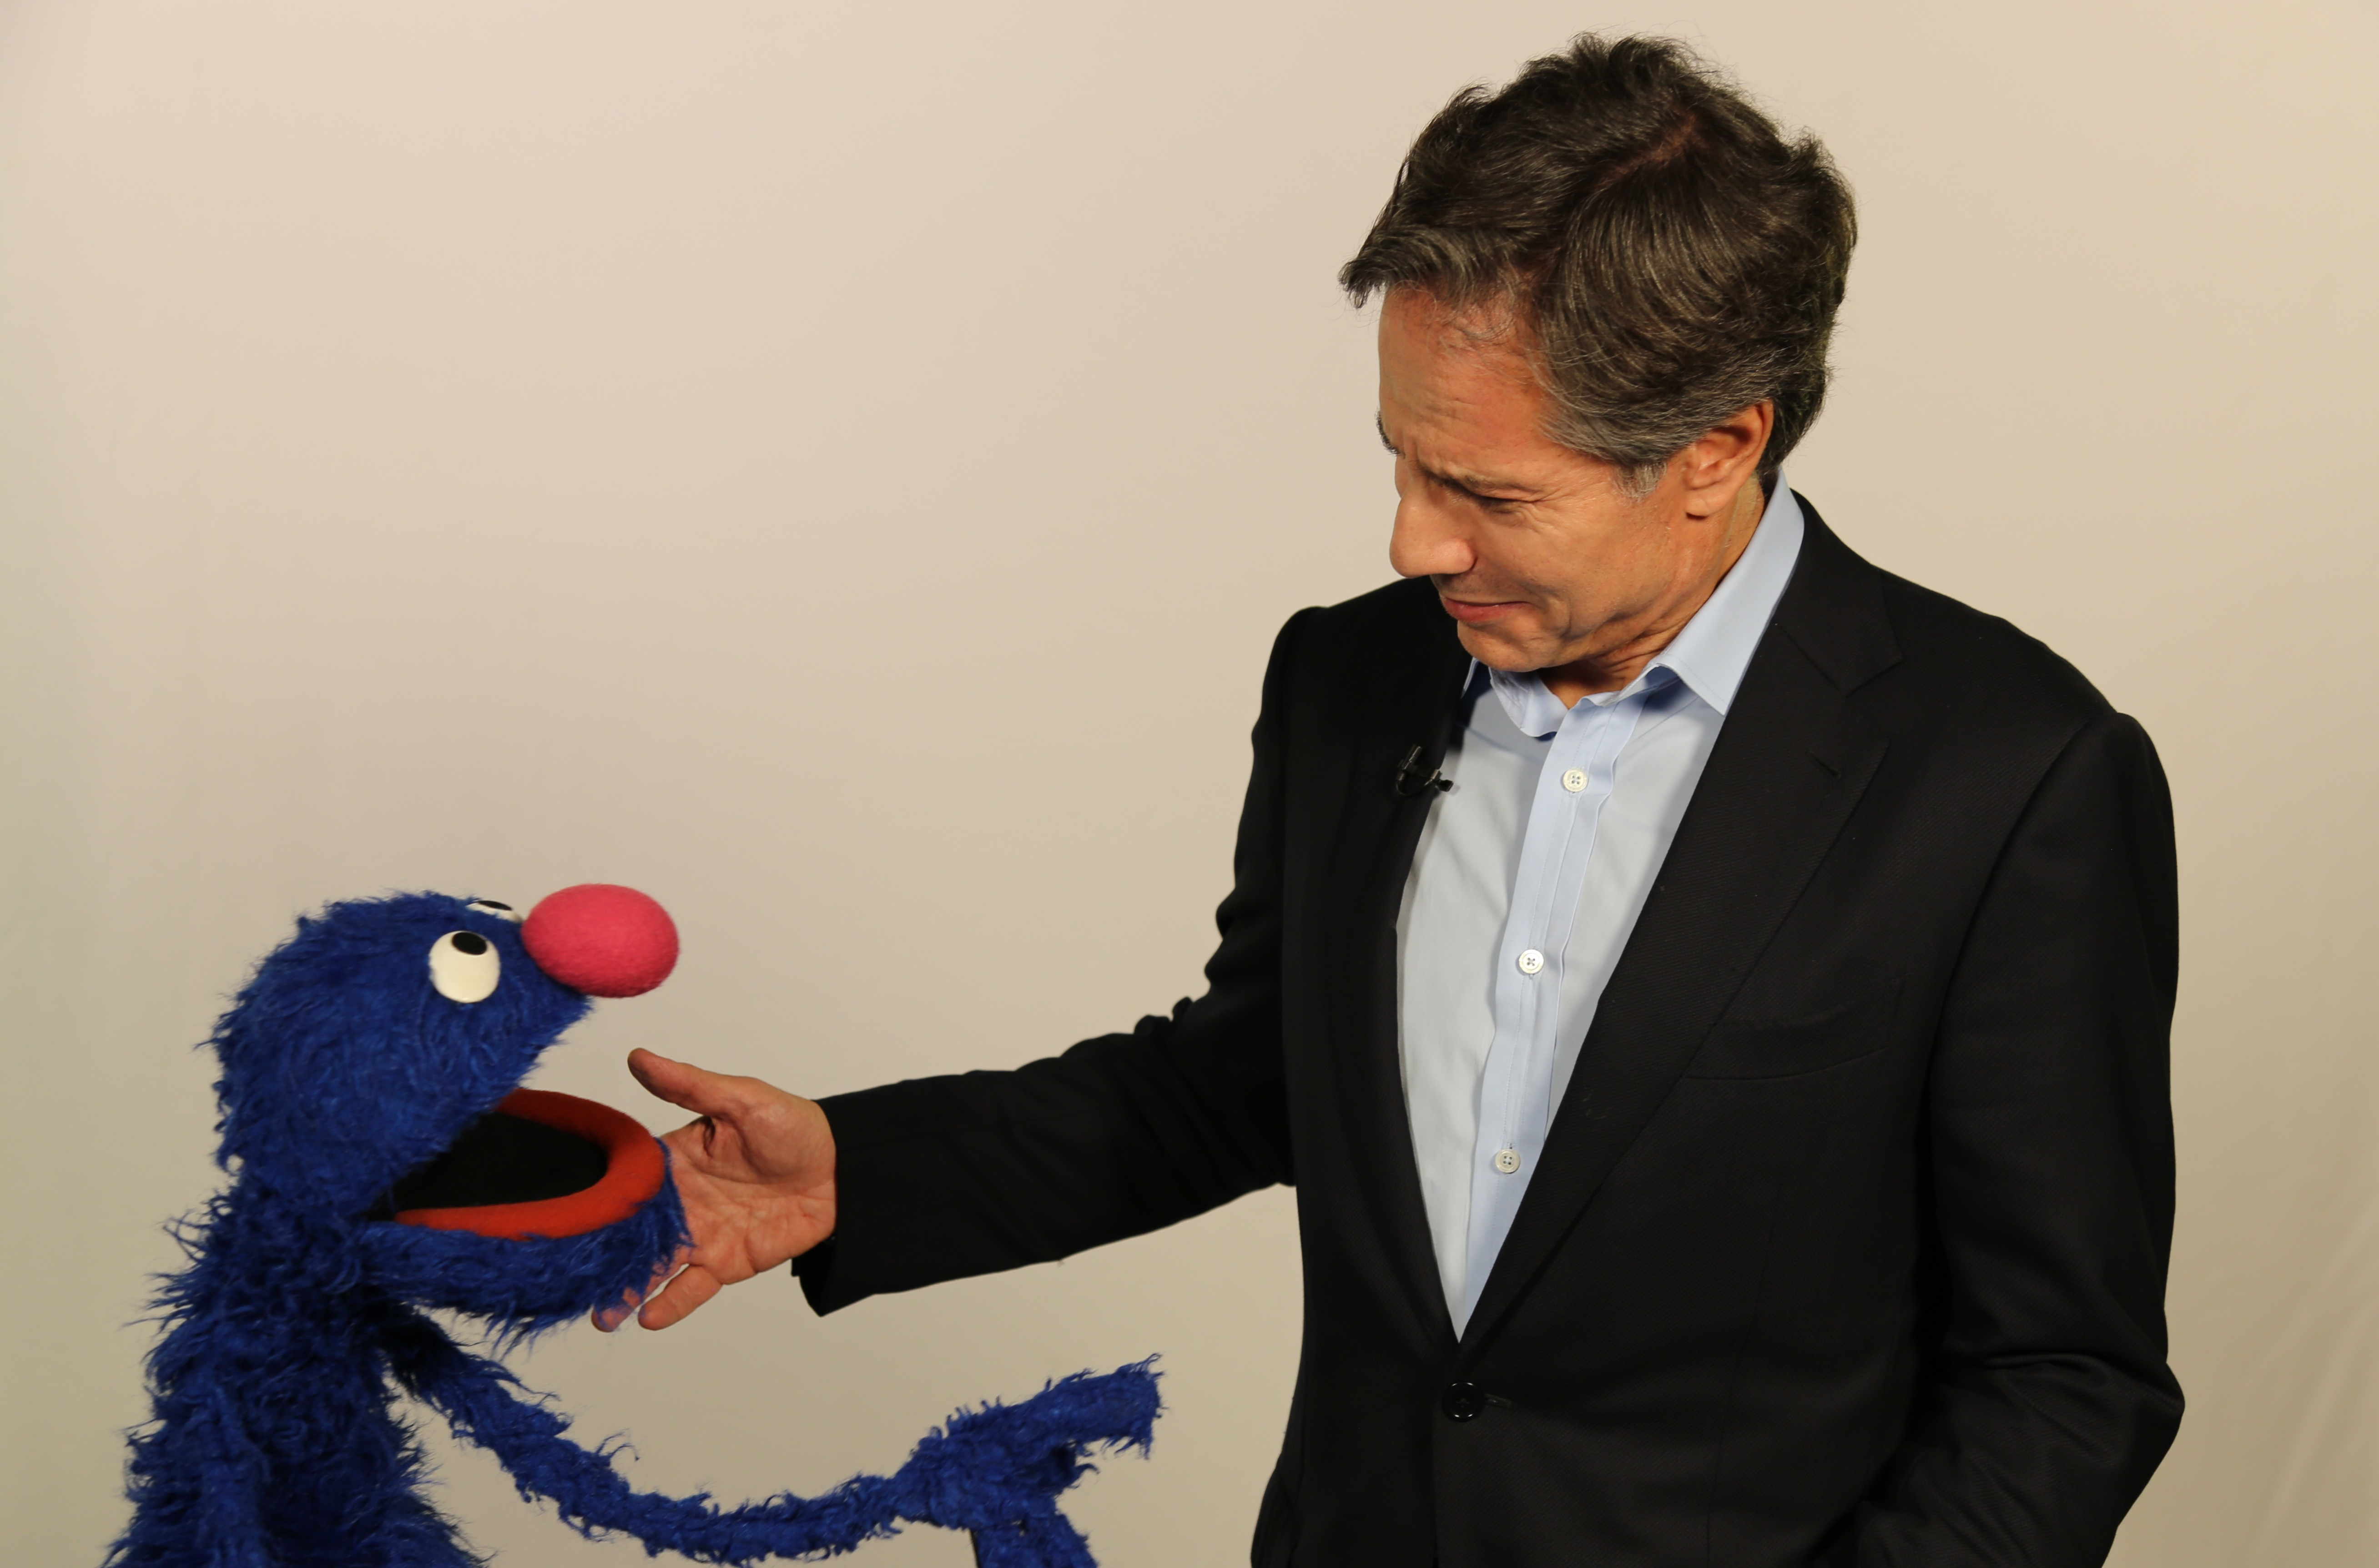 Grover Wikiwand